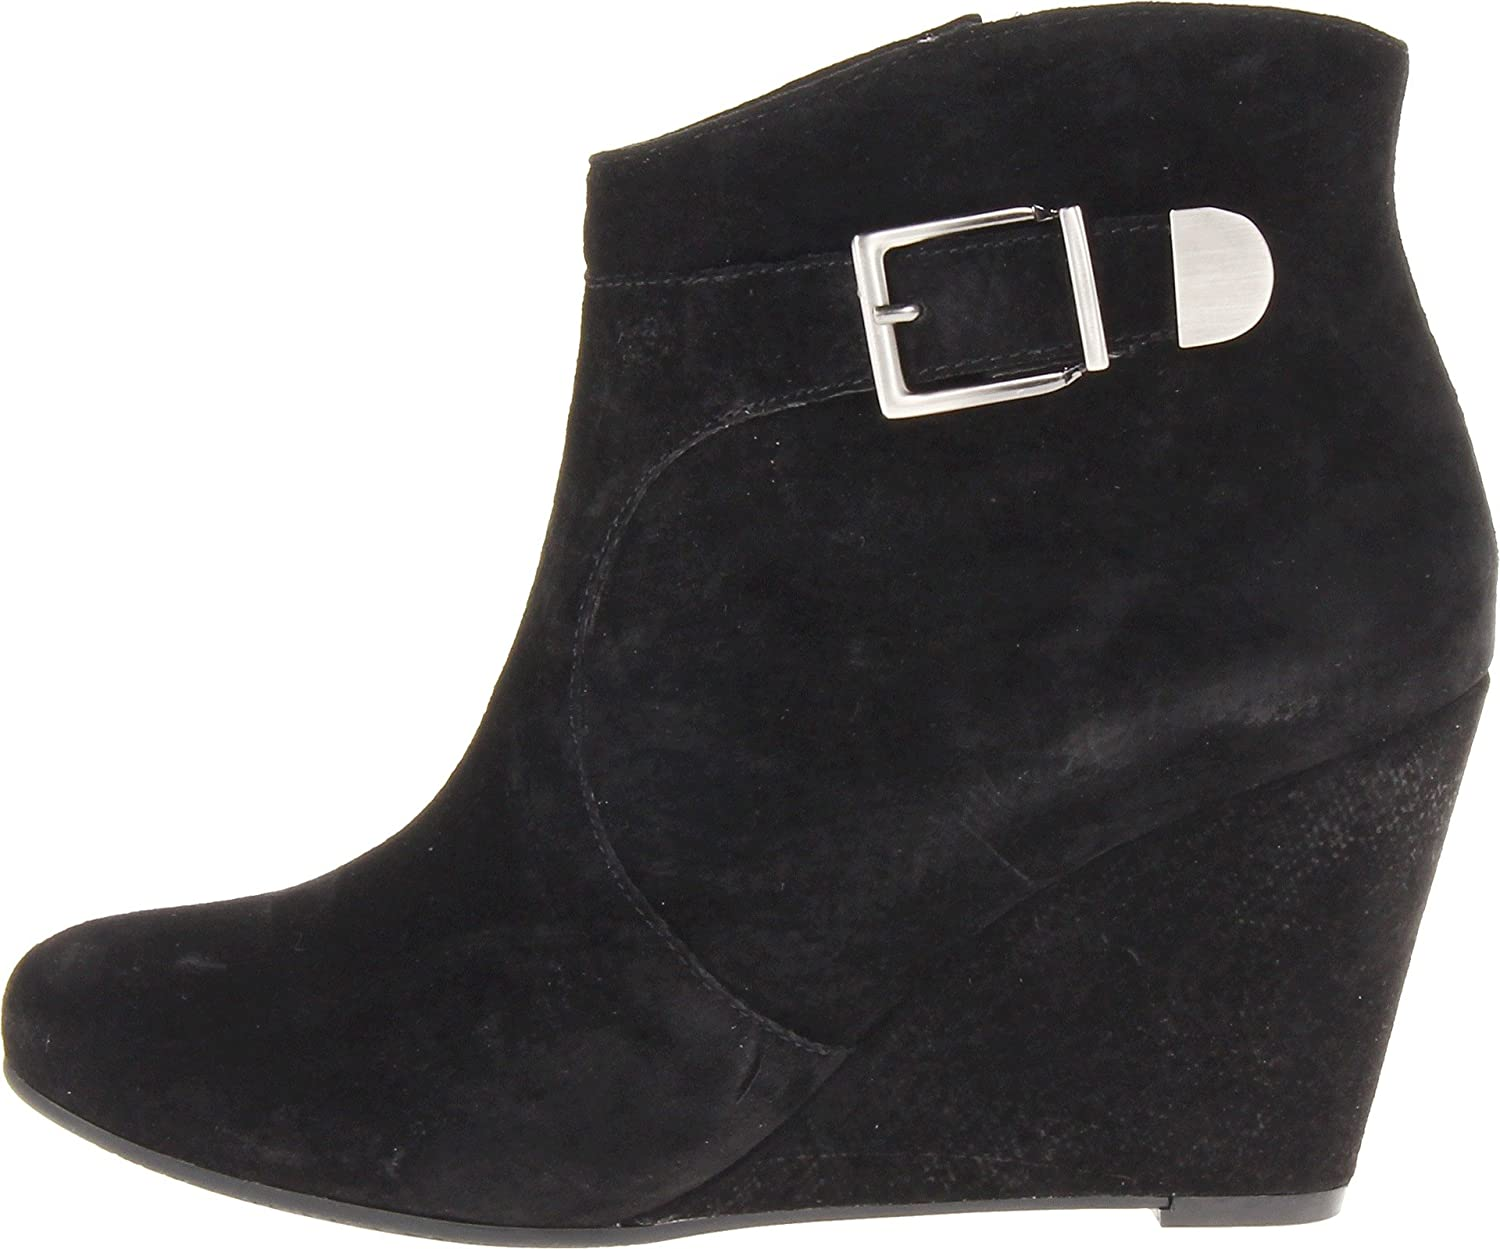 BCBGeneration Women's Wooster Boot